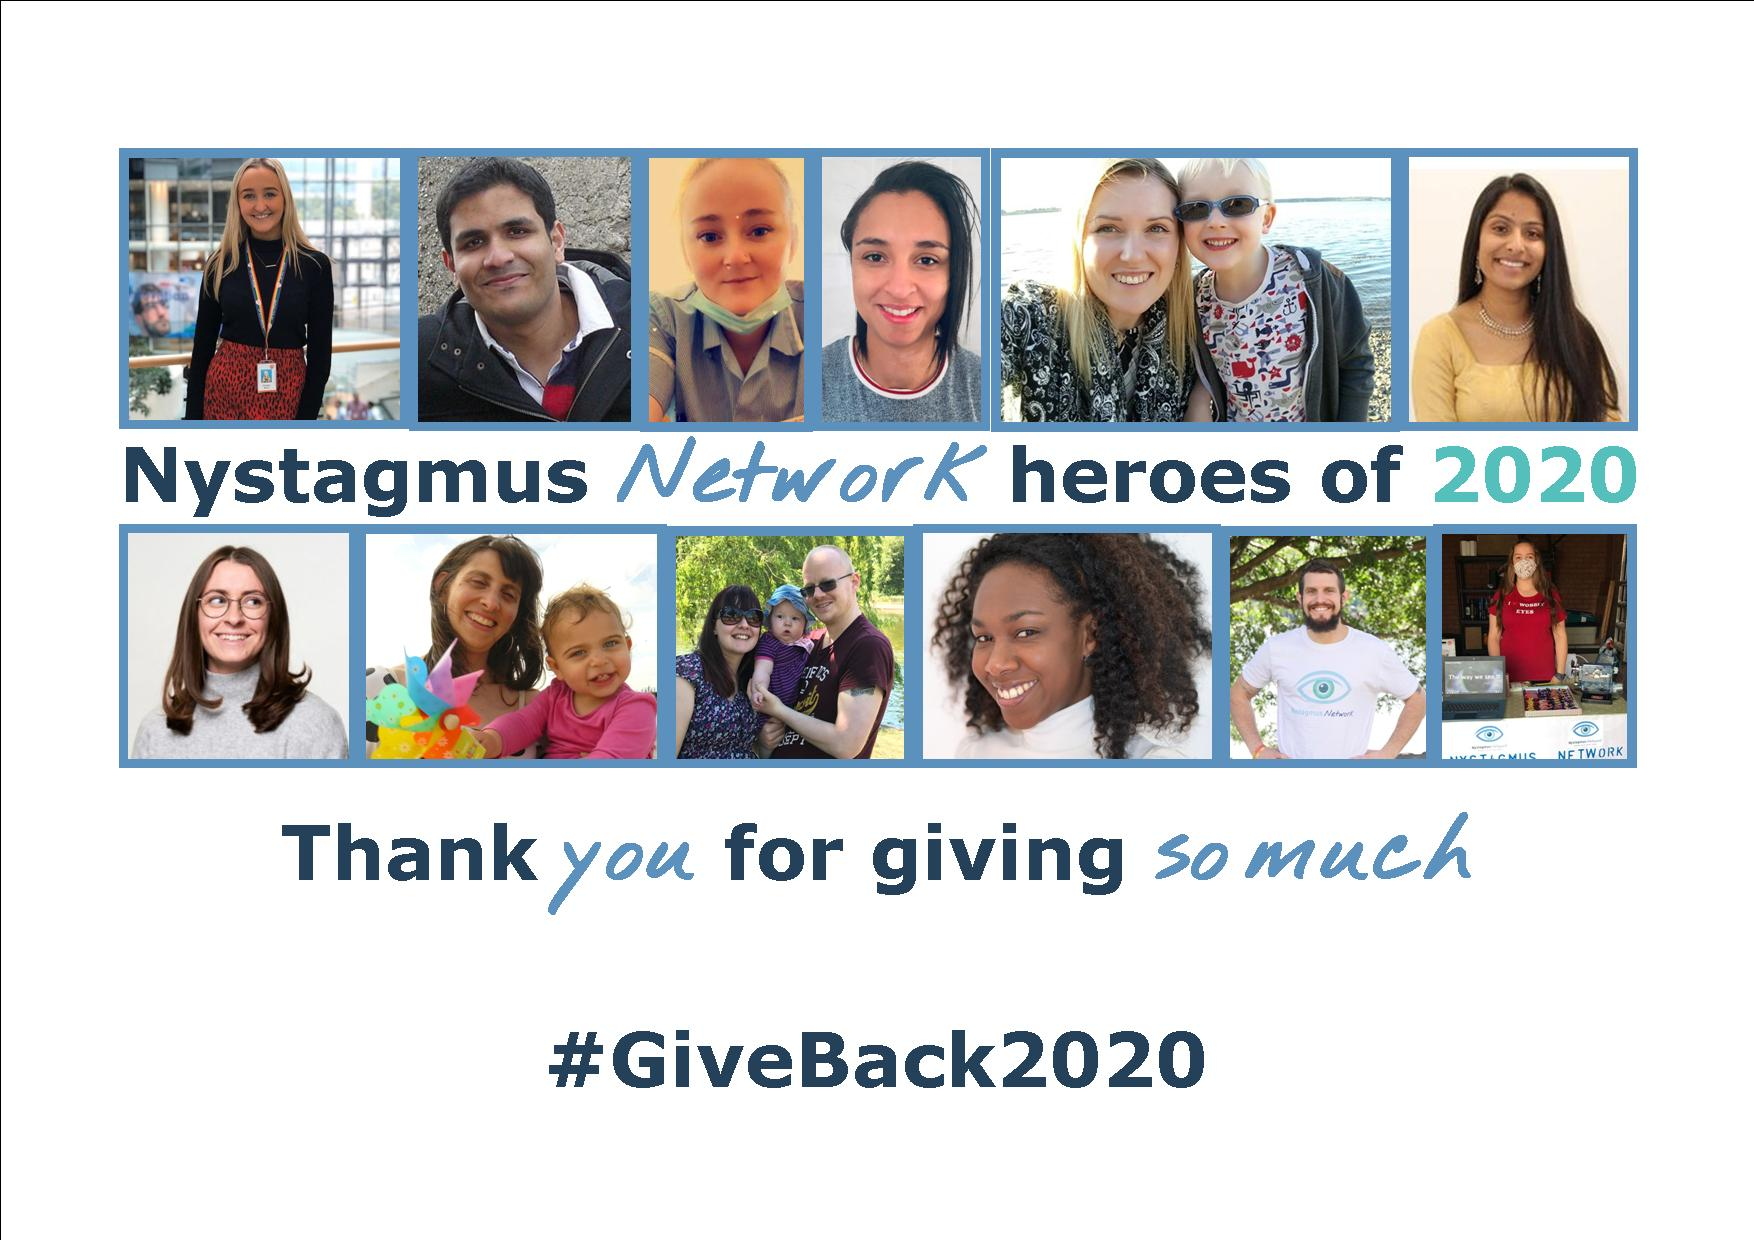 12 thumbnail images of people who have given so much to the Nystagmus Network and the nystagmus community in 2020.